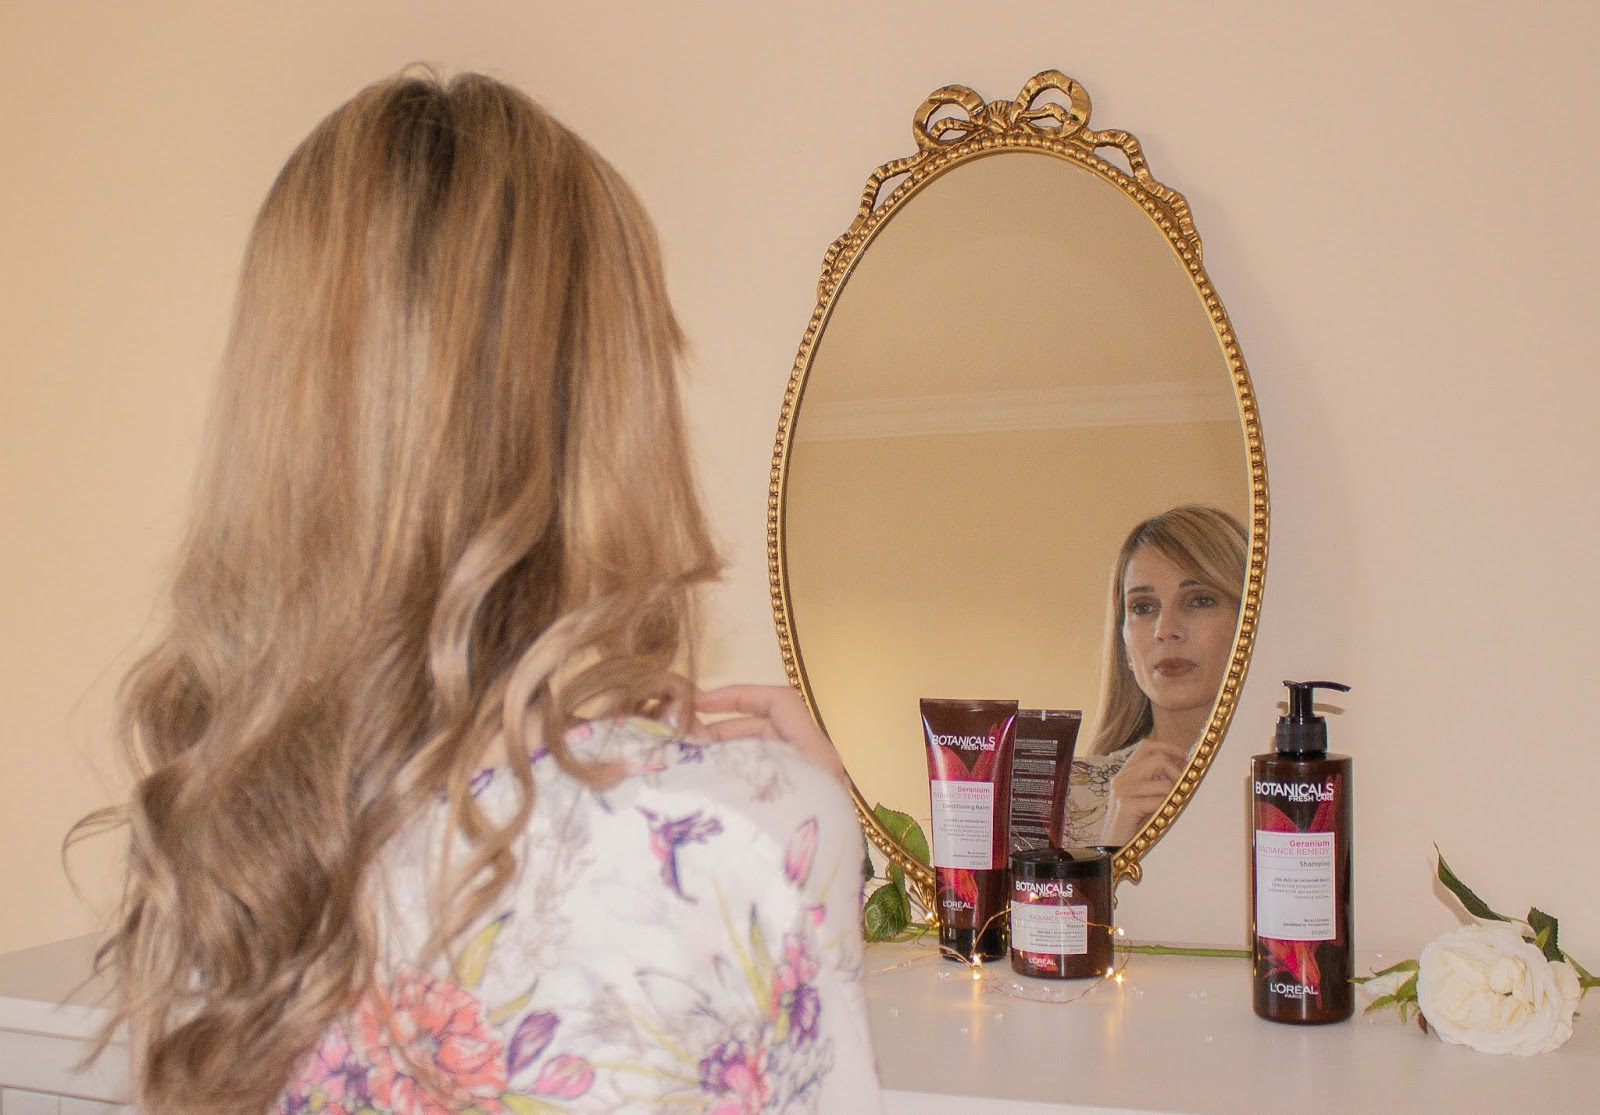 L'Oreal Botanicals Fresh Care - The Range That's Helping To Protect My Coloured Hair